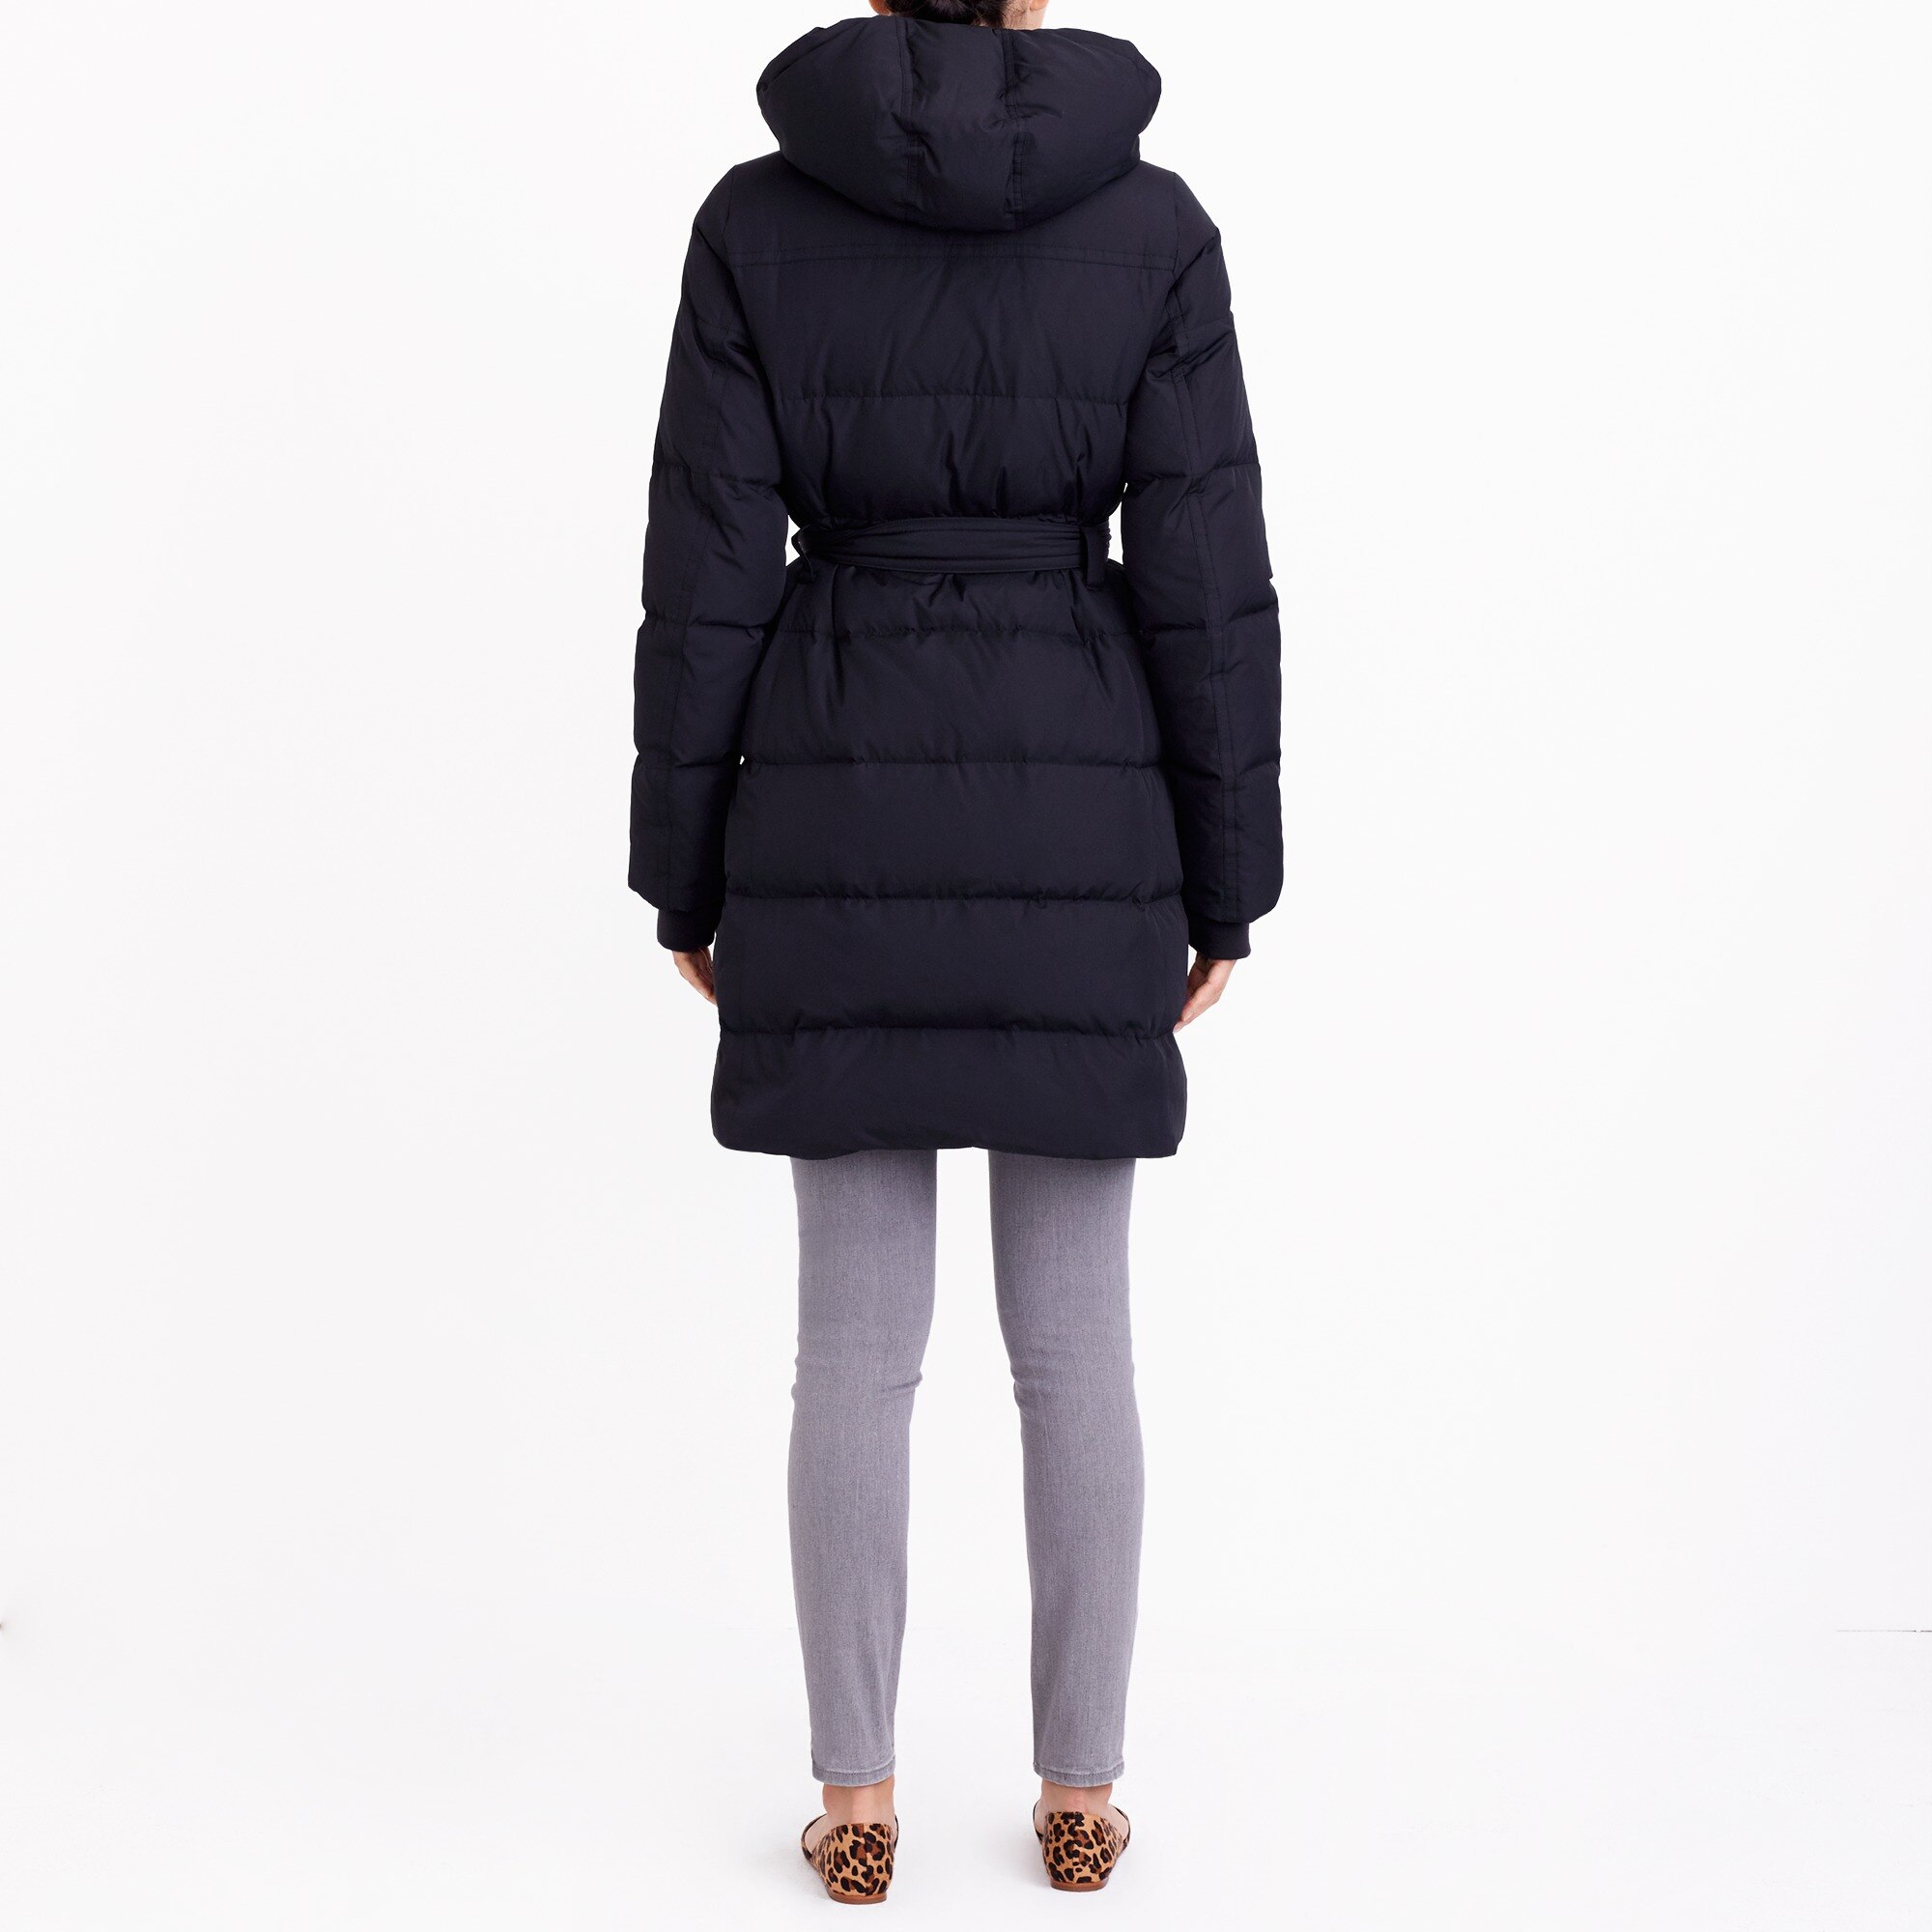 Image 3 for Long belted puffer jacket